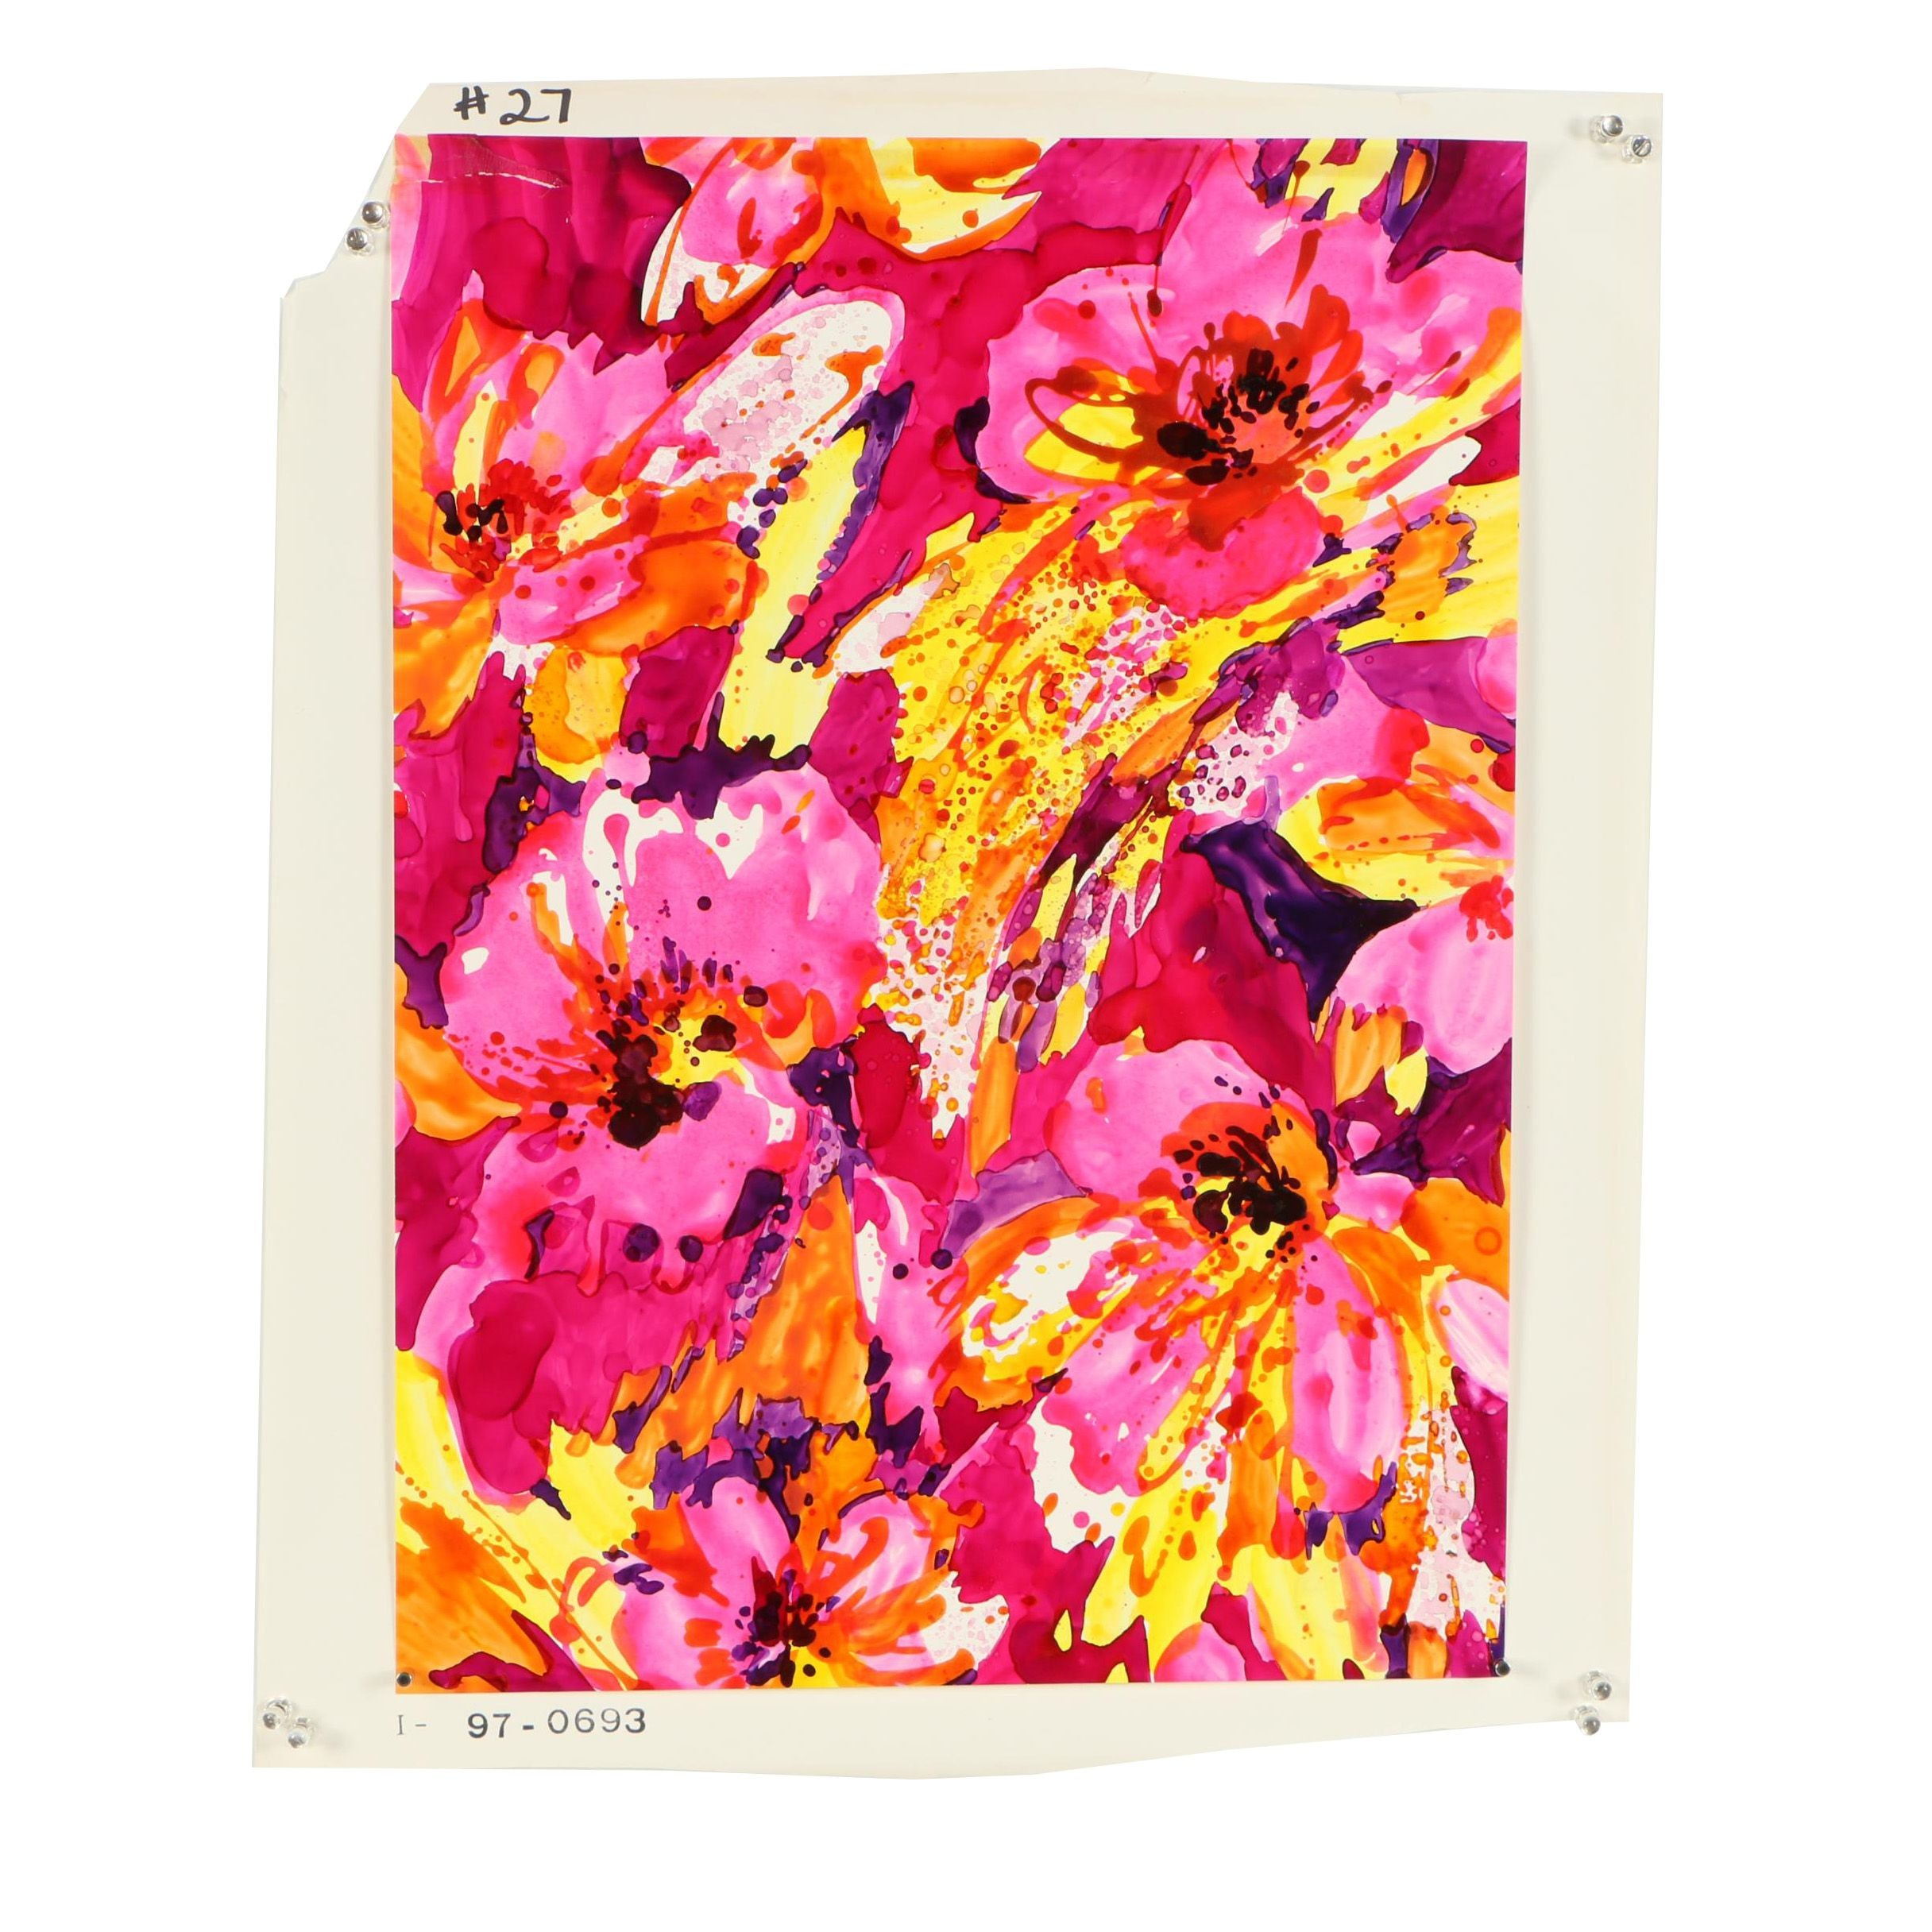 Acrylic Painted Textile Proof